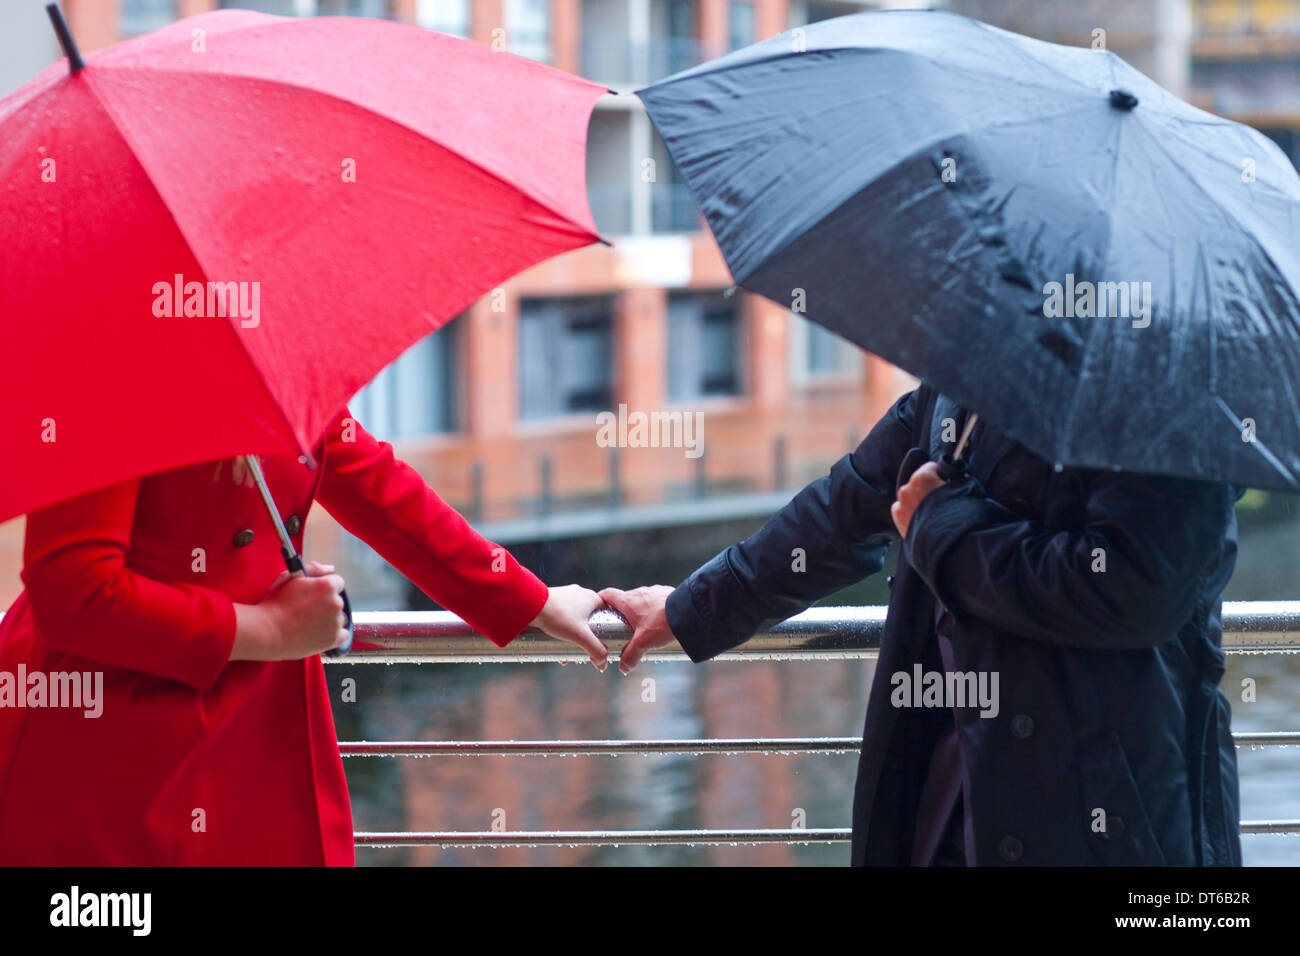 Symmetrical couple holding handrail and carrying umbrella's - Stock Image